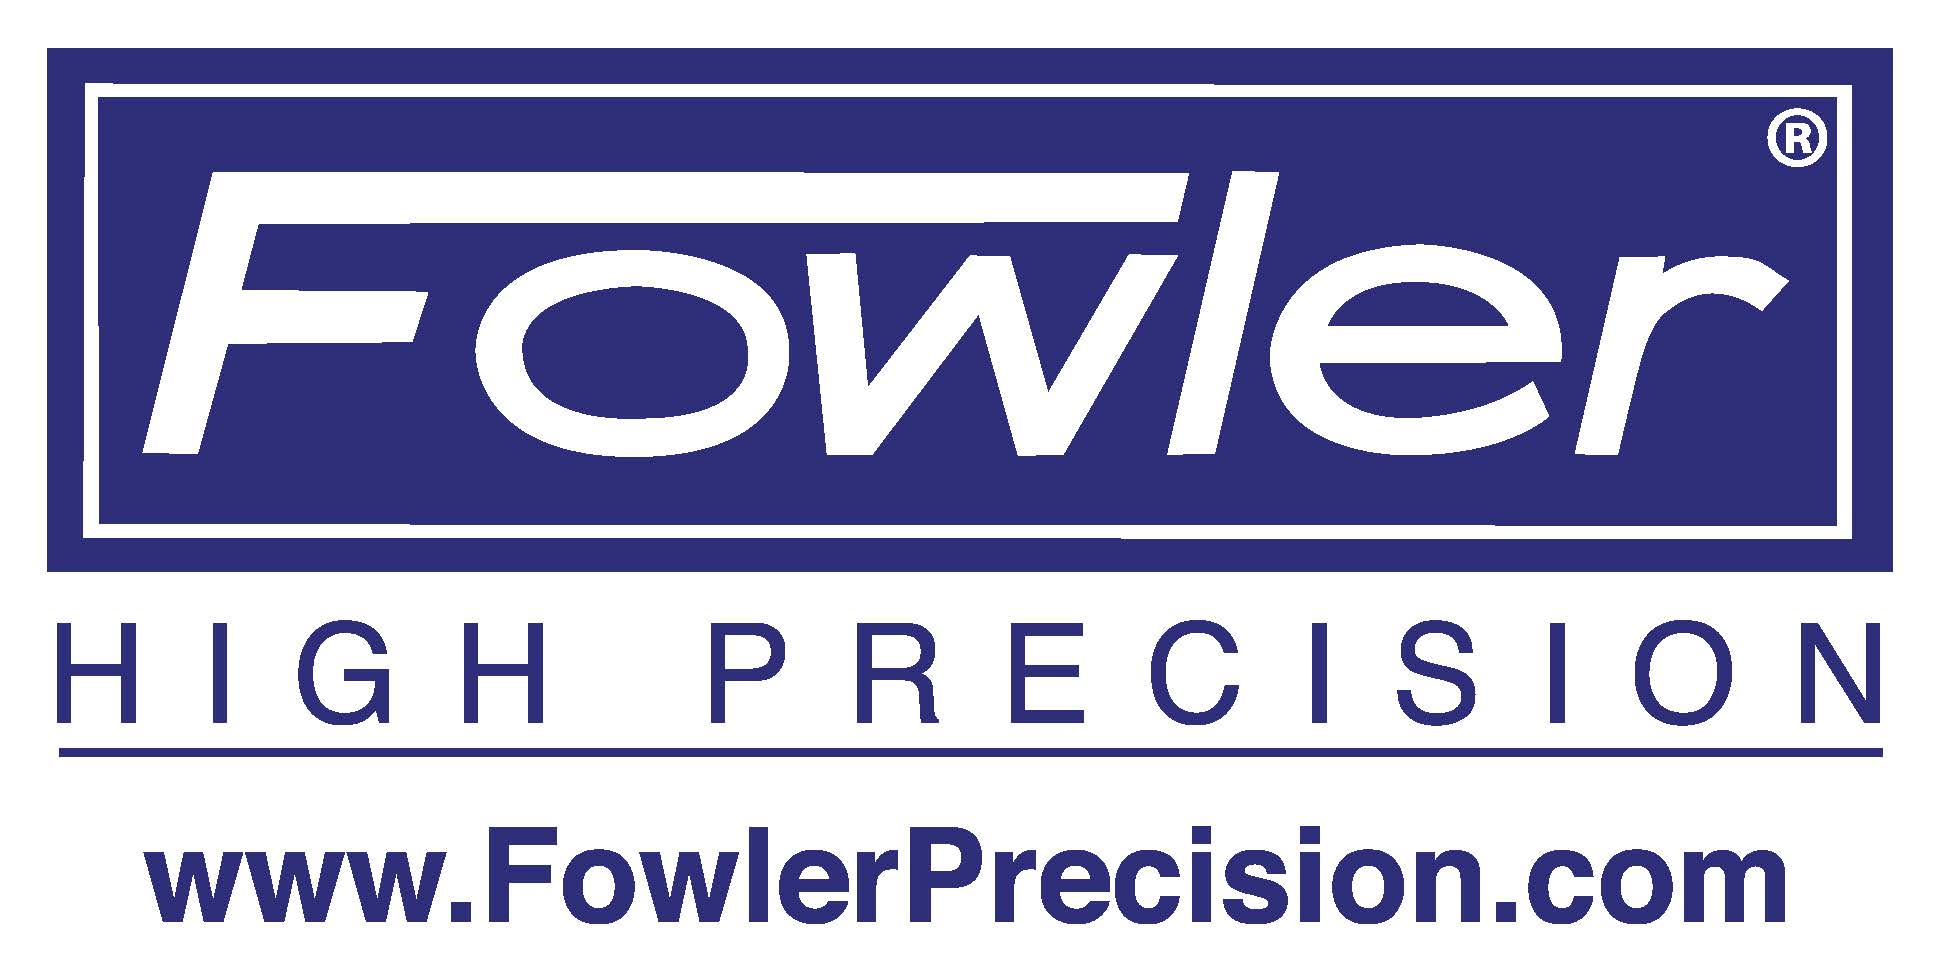 Fowler-High-Precision